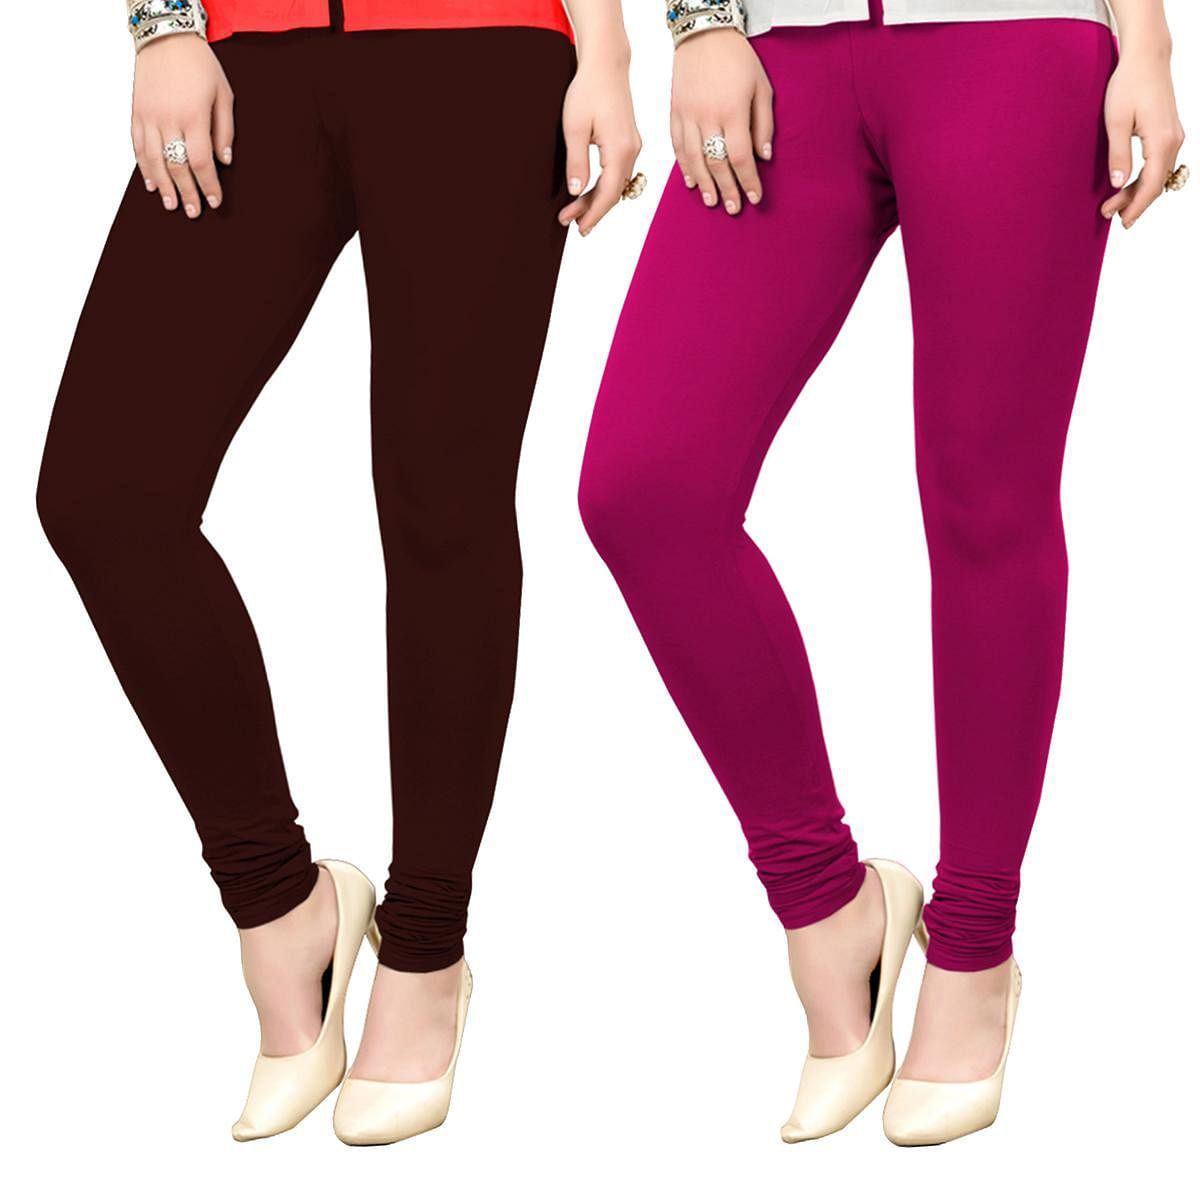 Blissful Casual Wear Ankle Length Cotton Leggings - Pack of 2